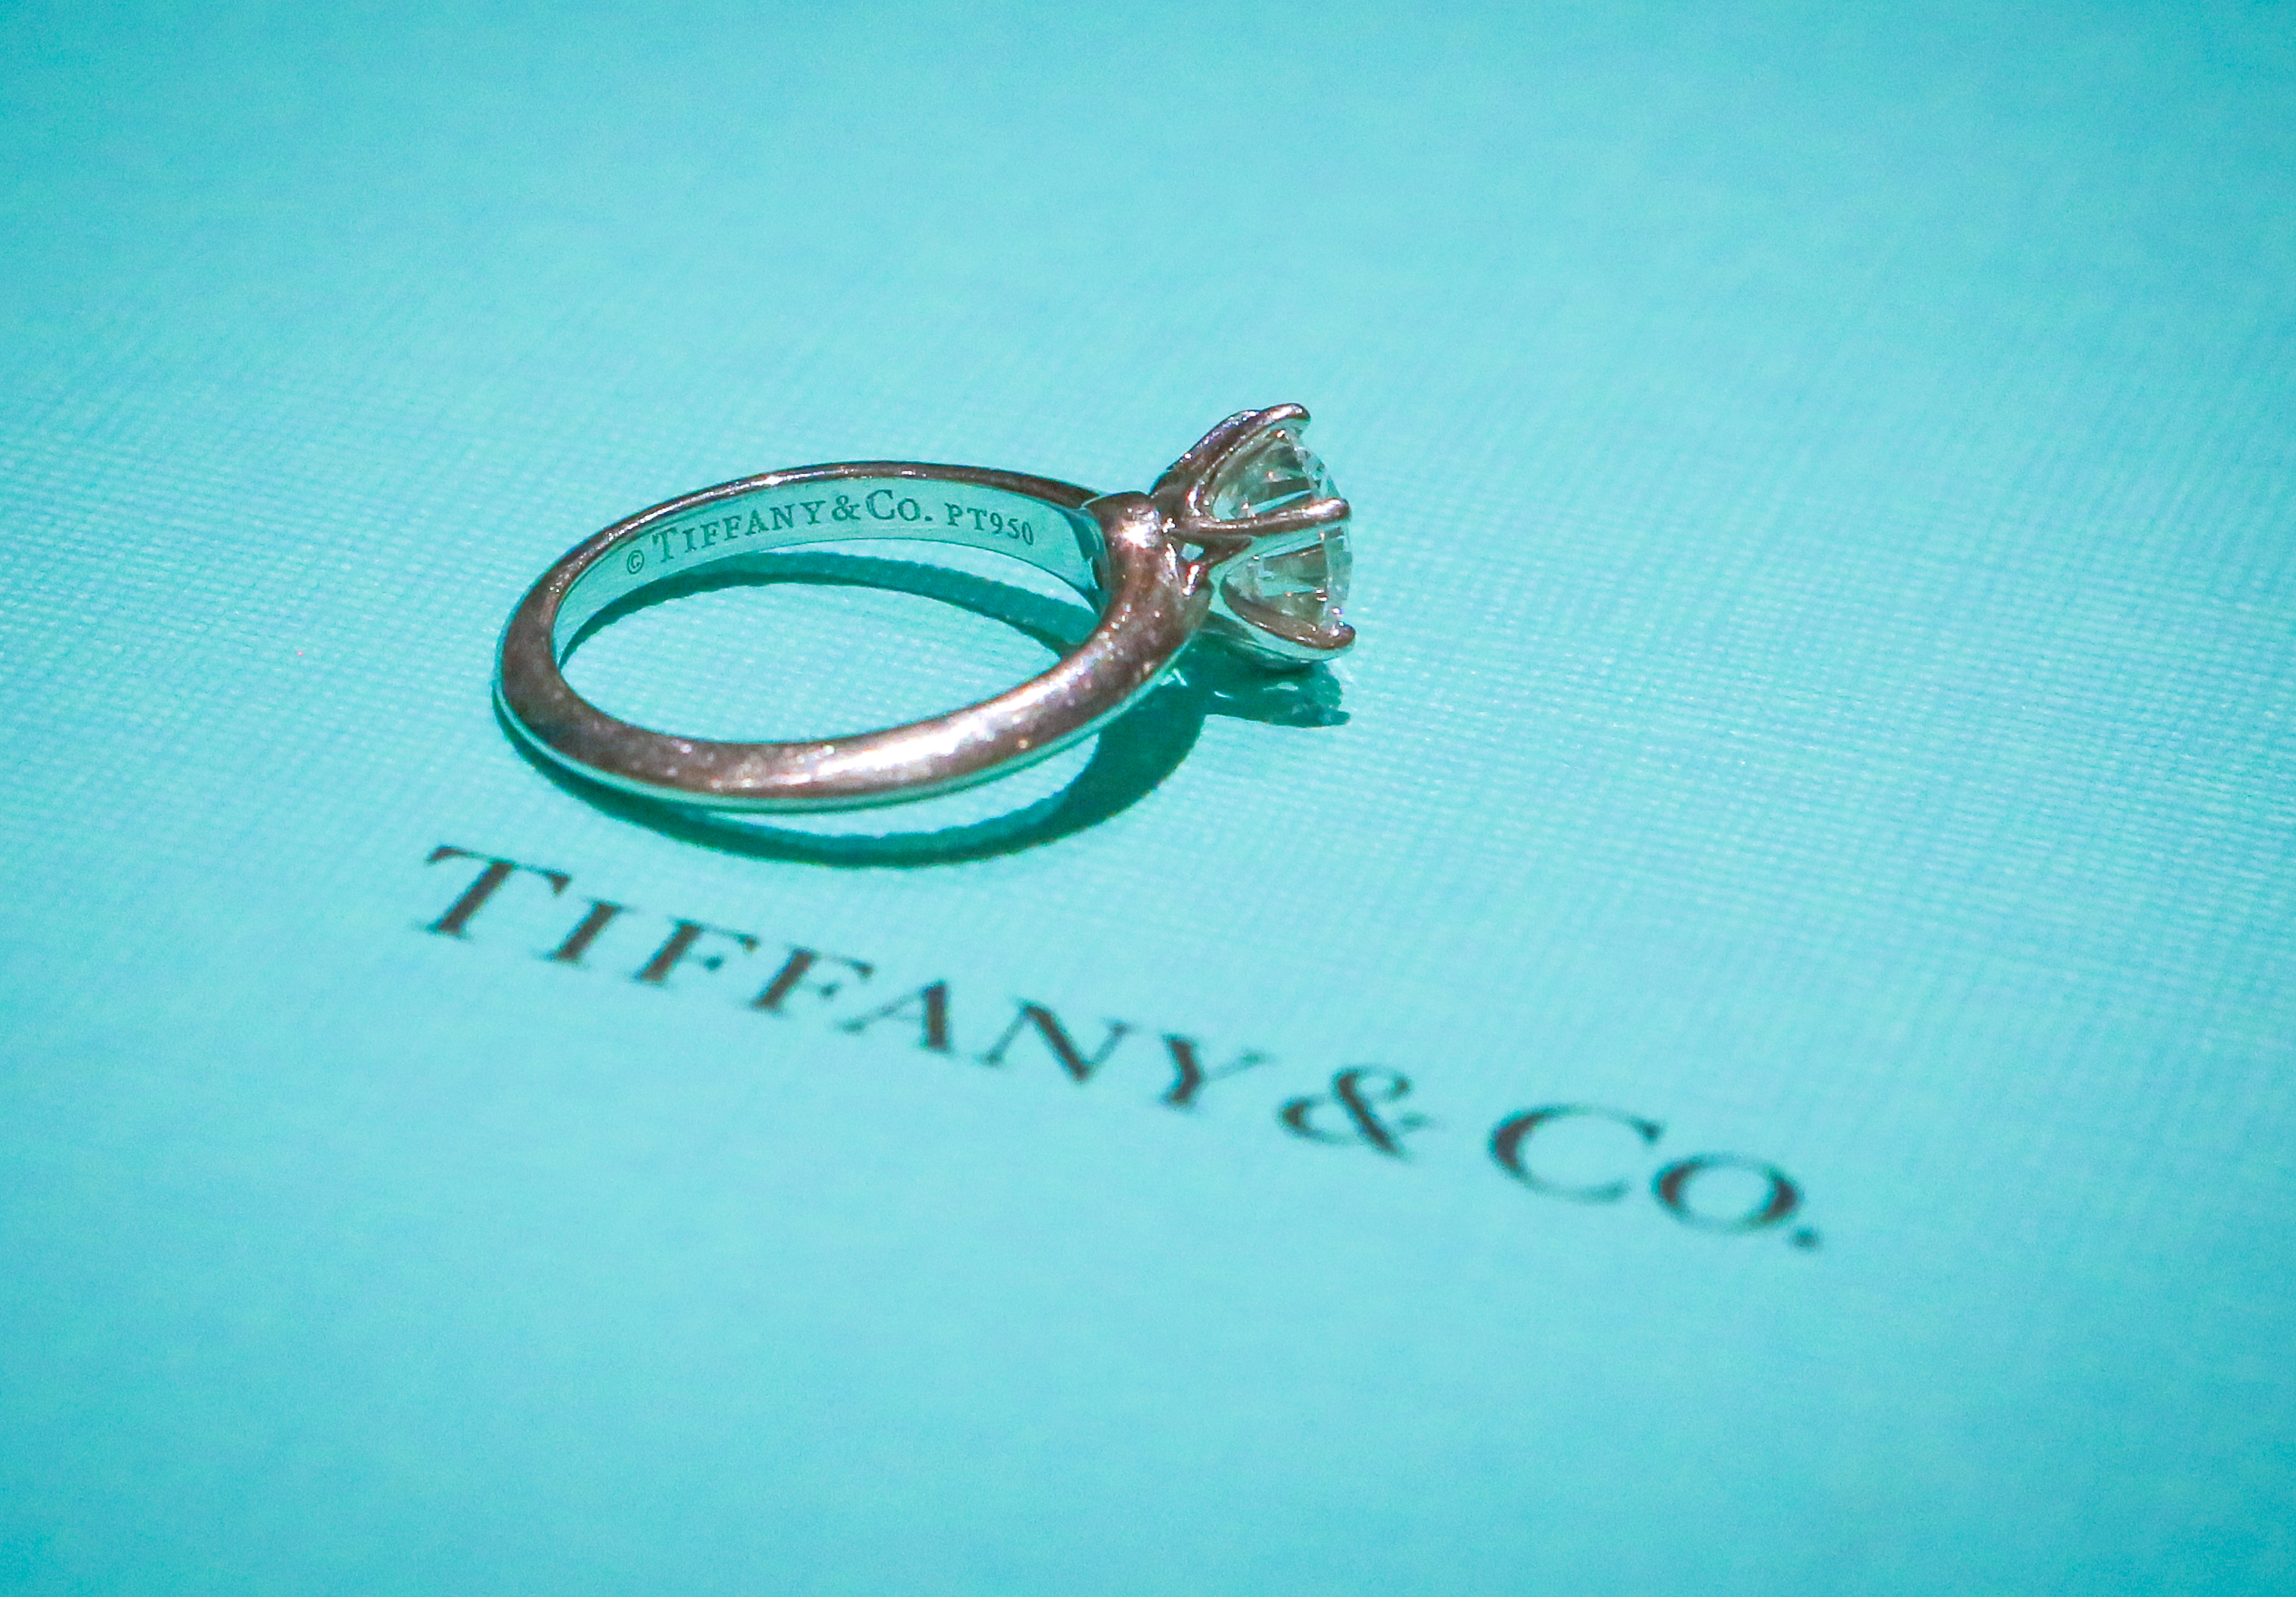 5fafef7b6 Tiffany & Co 1.55ct Classic Solitare Ring in Platinum. Tiffany ...